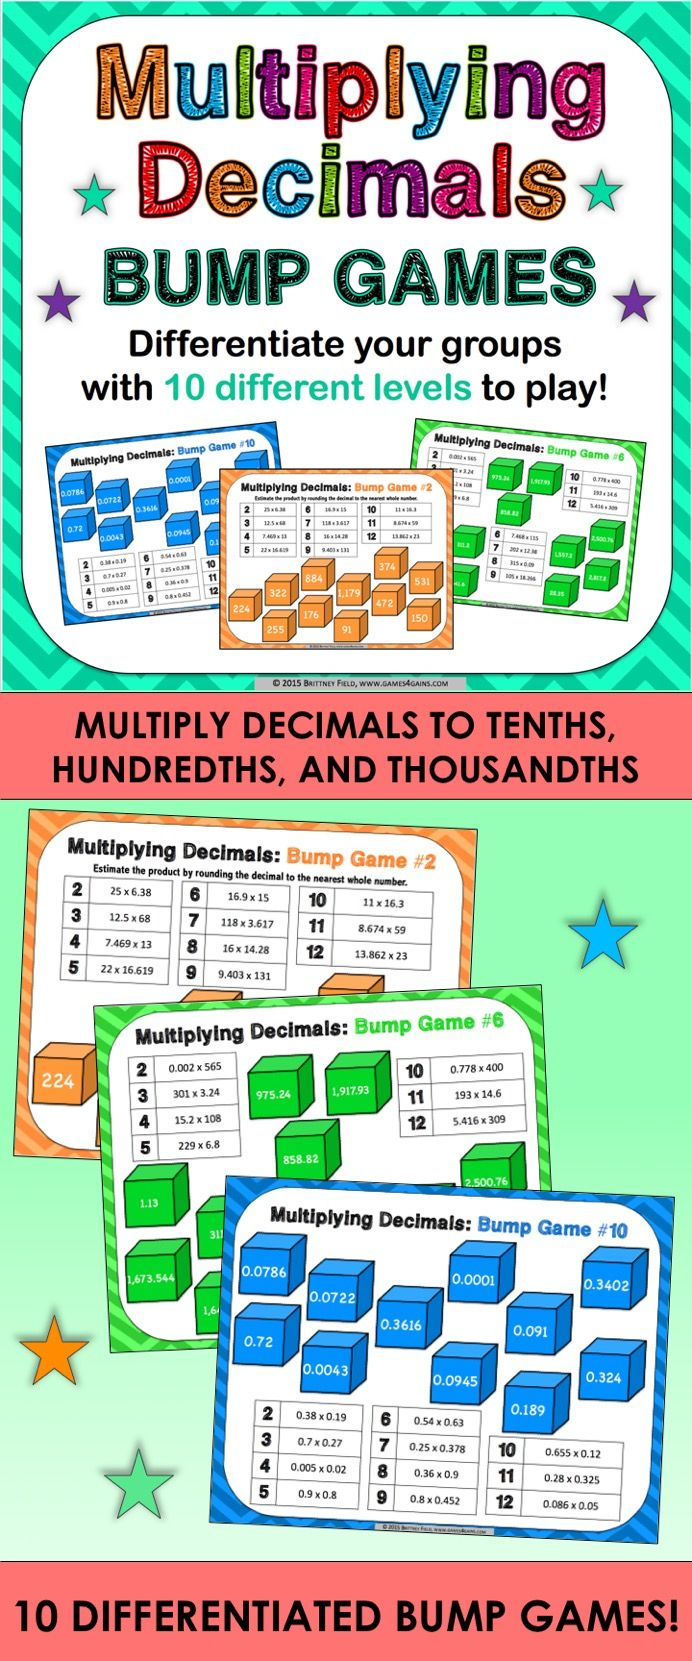 Multiplying Decimals Bump Games contains 10 different multiplying decimals games to help students practice estimating decimal products and multiplying decimals to tenths, hundredths, and thousandths.  As students work through the games, each one ramps up in difficulty. This means that you can have all of your students working at their appropriate level when using this multiplying decimals set!